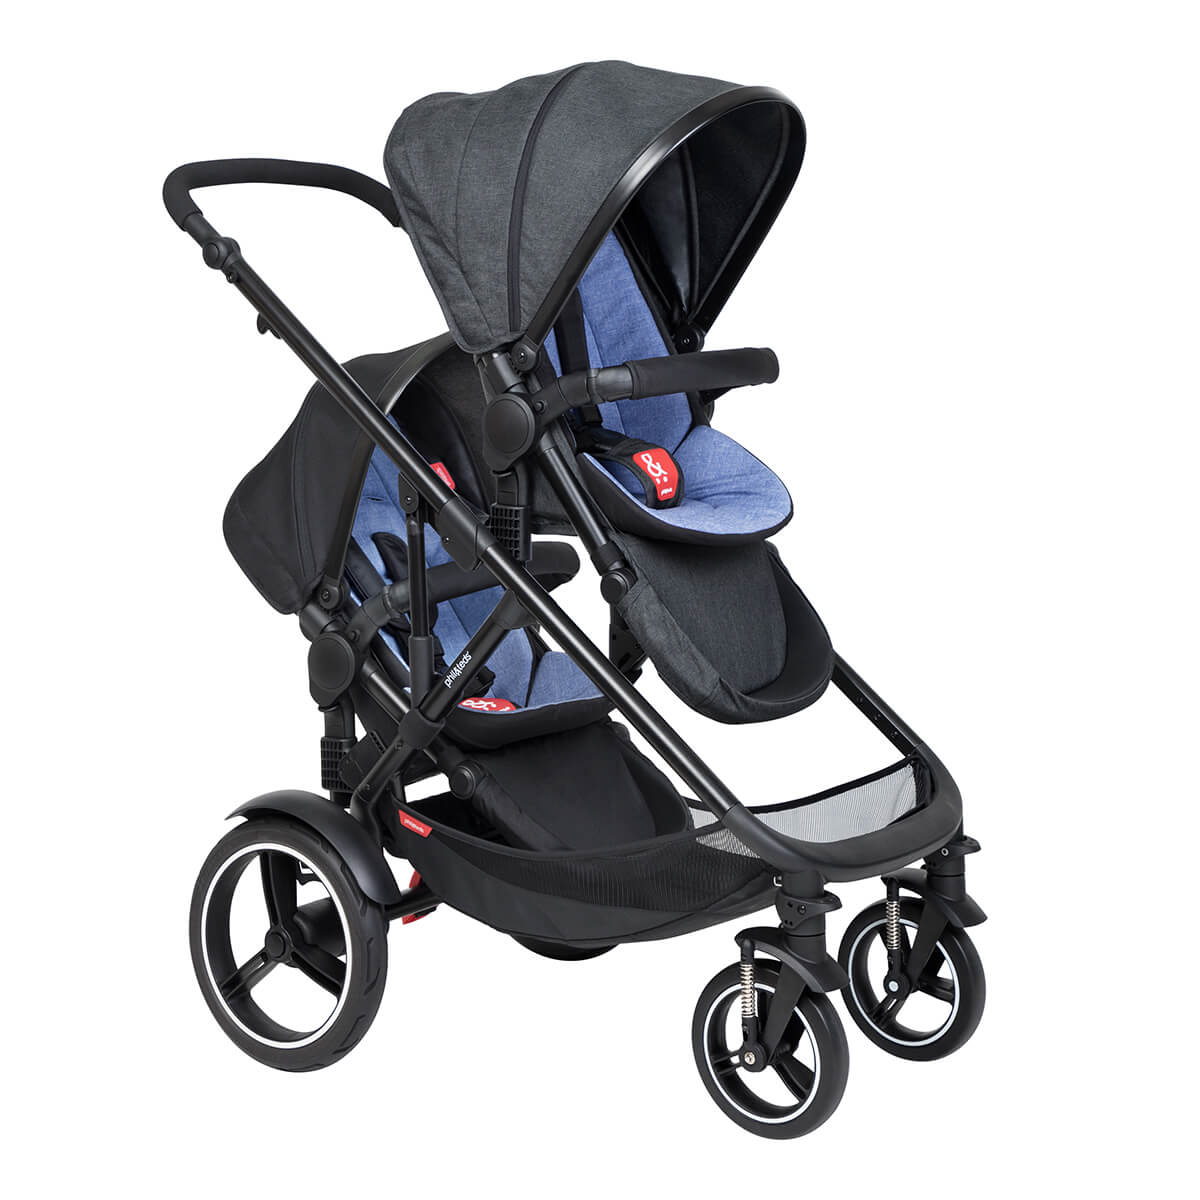 https://cdn.accentuate.io/4509529210968/19272668348504/philteds-voyager-inline-buggy-with-double-kit-in-rear-in-sky-blue-colour-v1626484641835.jpg?1200x1200